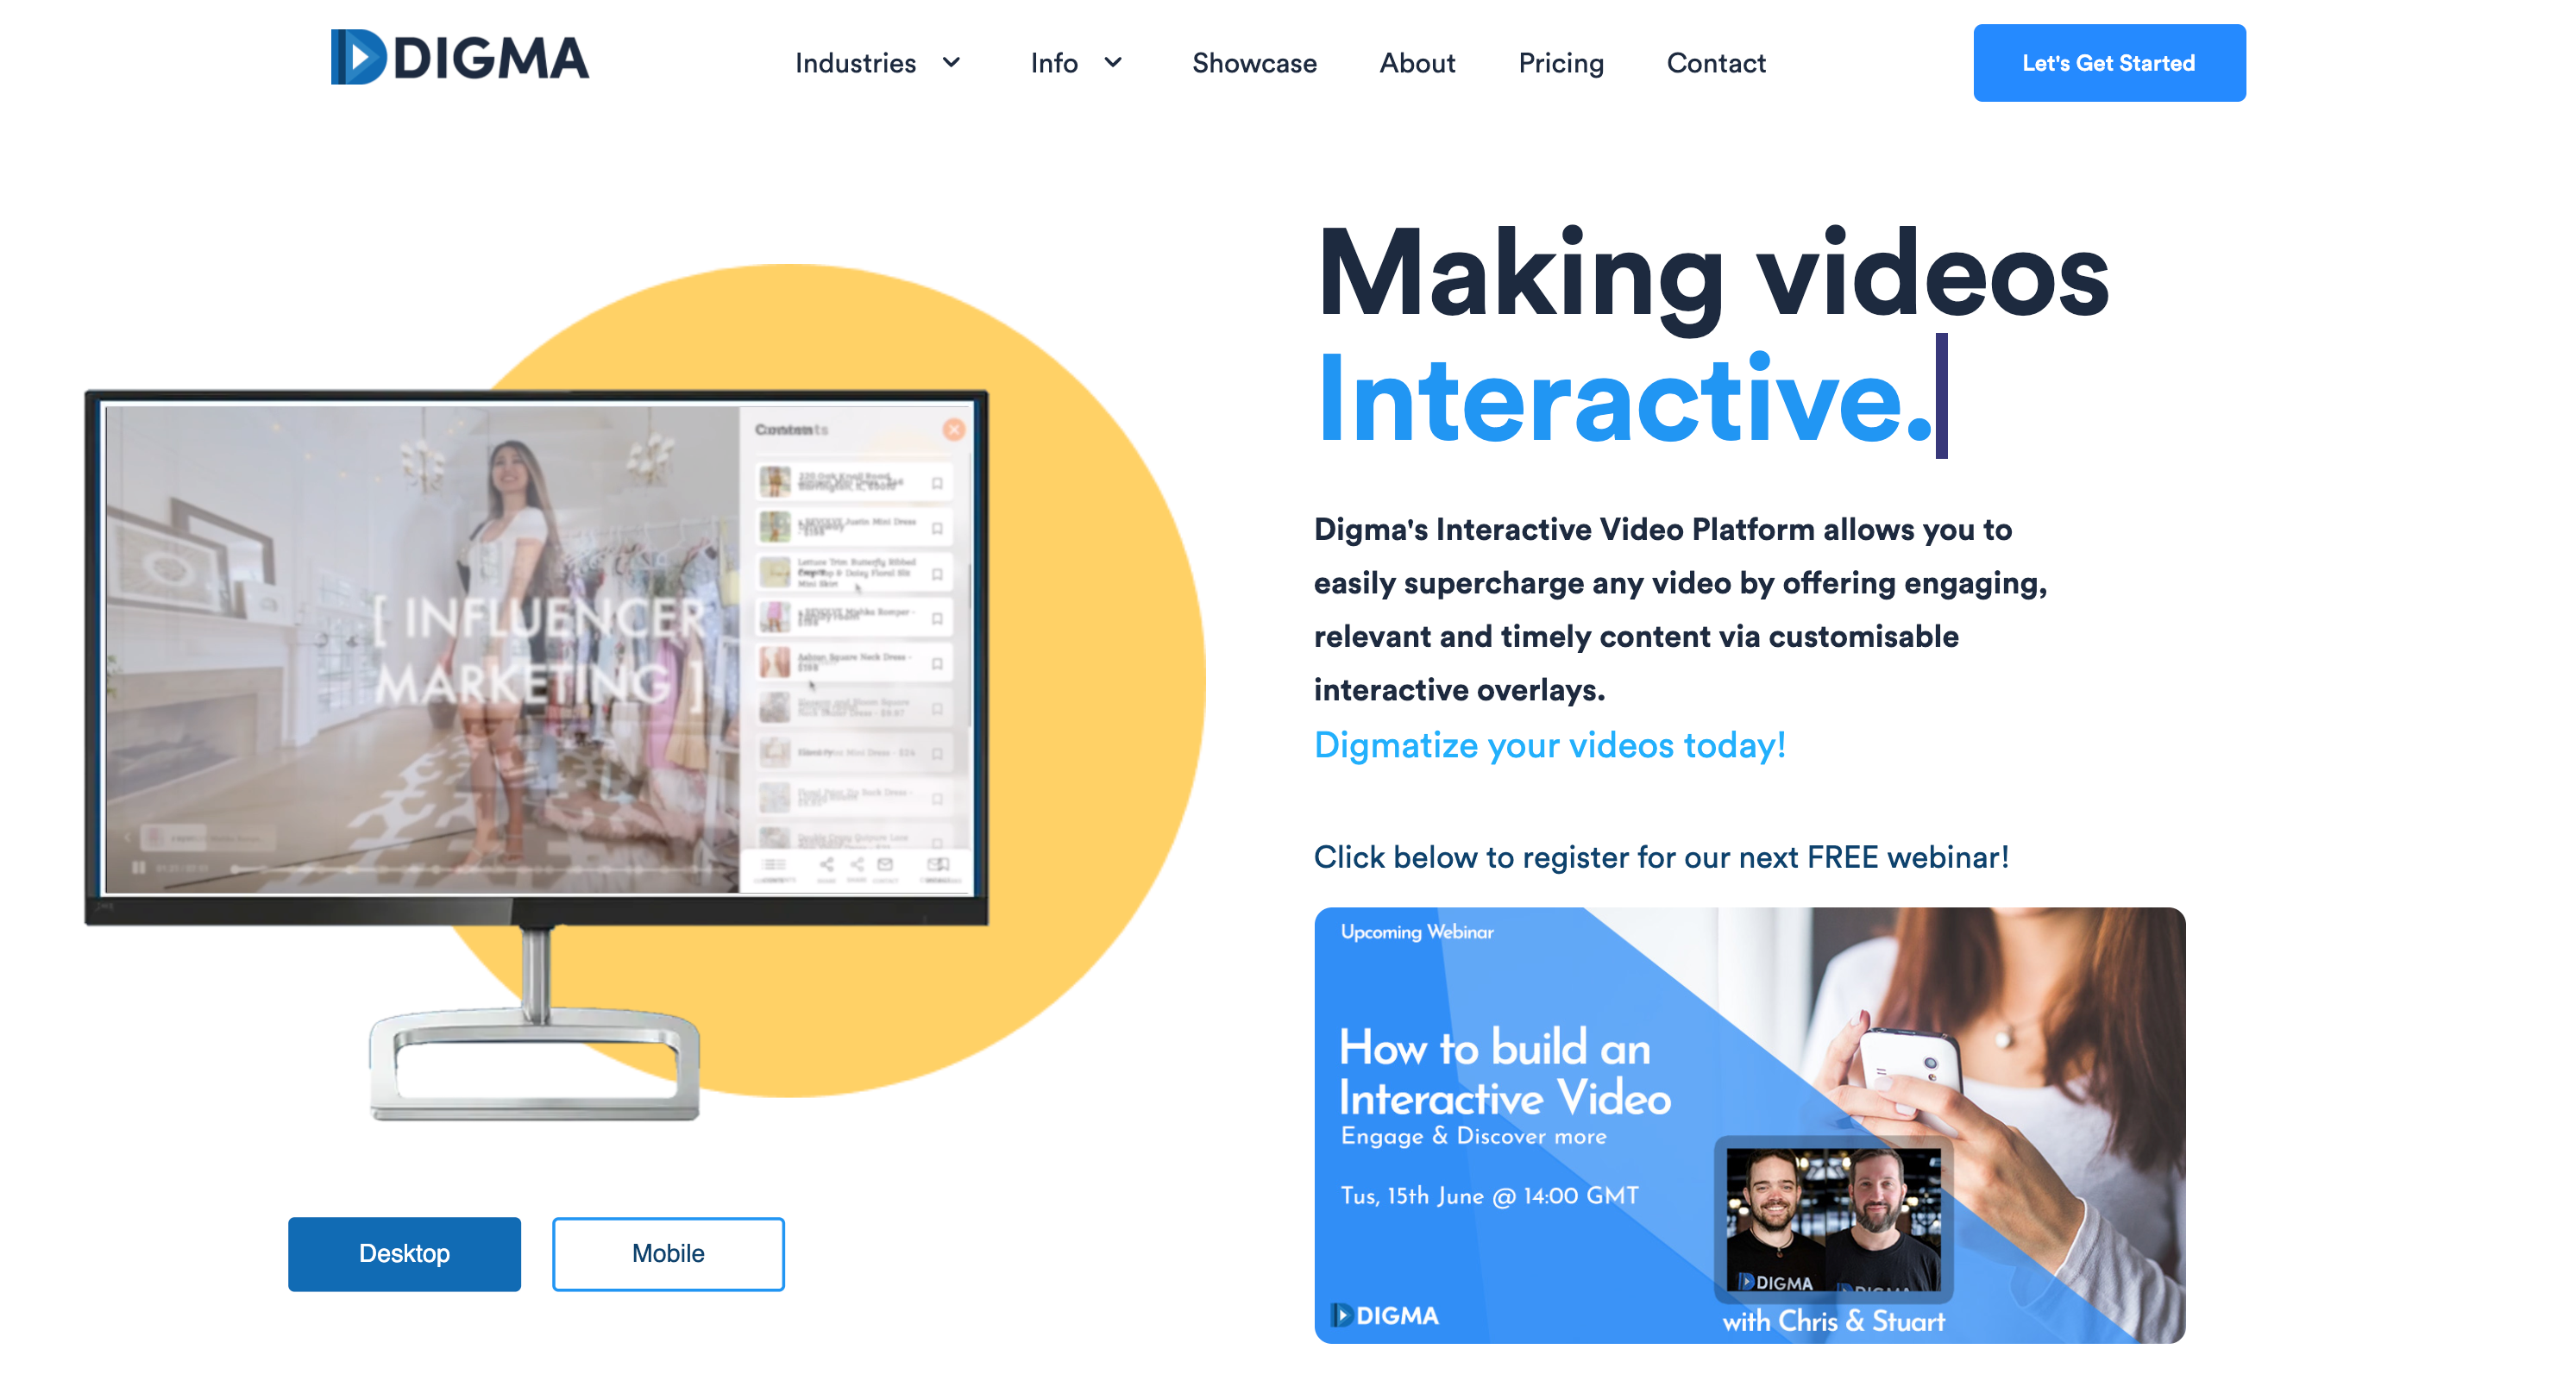 Welcome to Digma - Making Videos Interactive